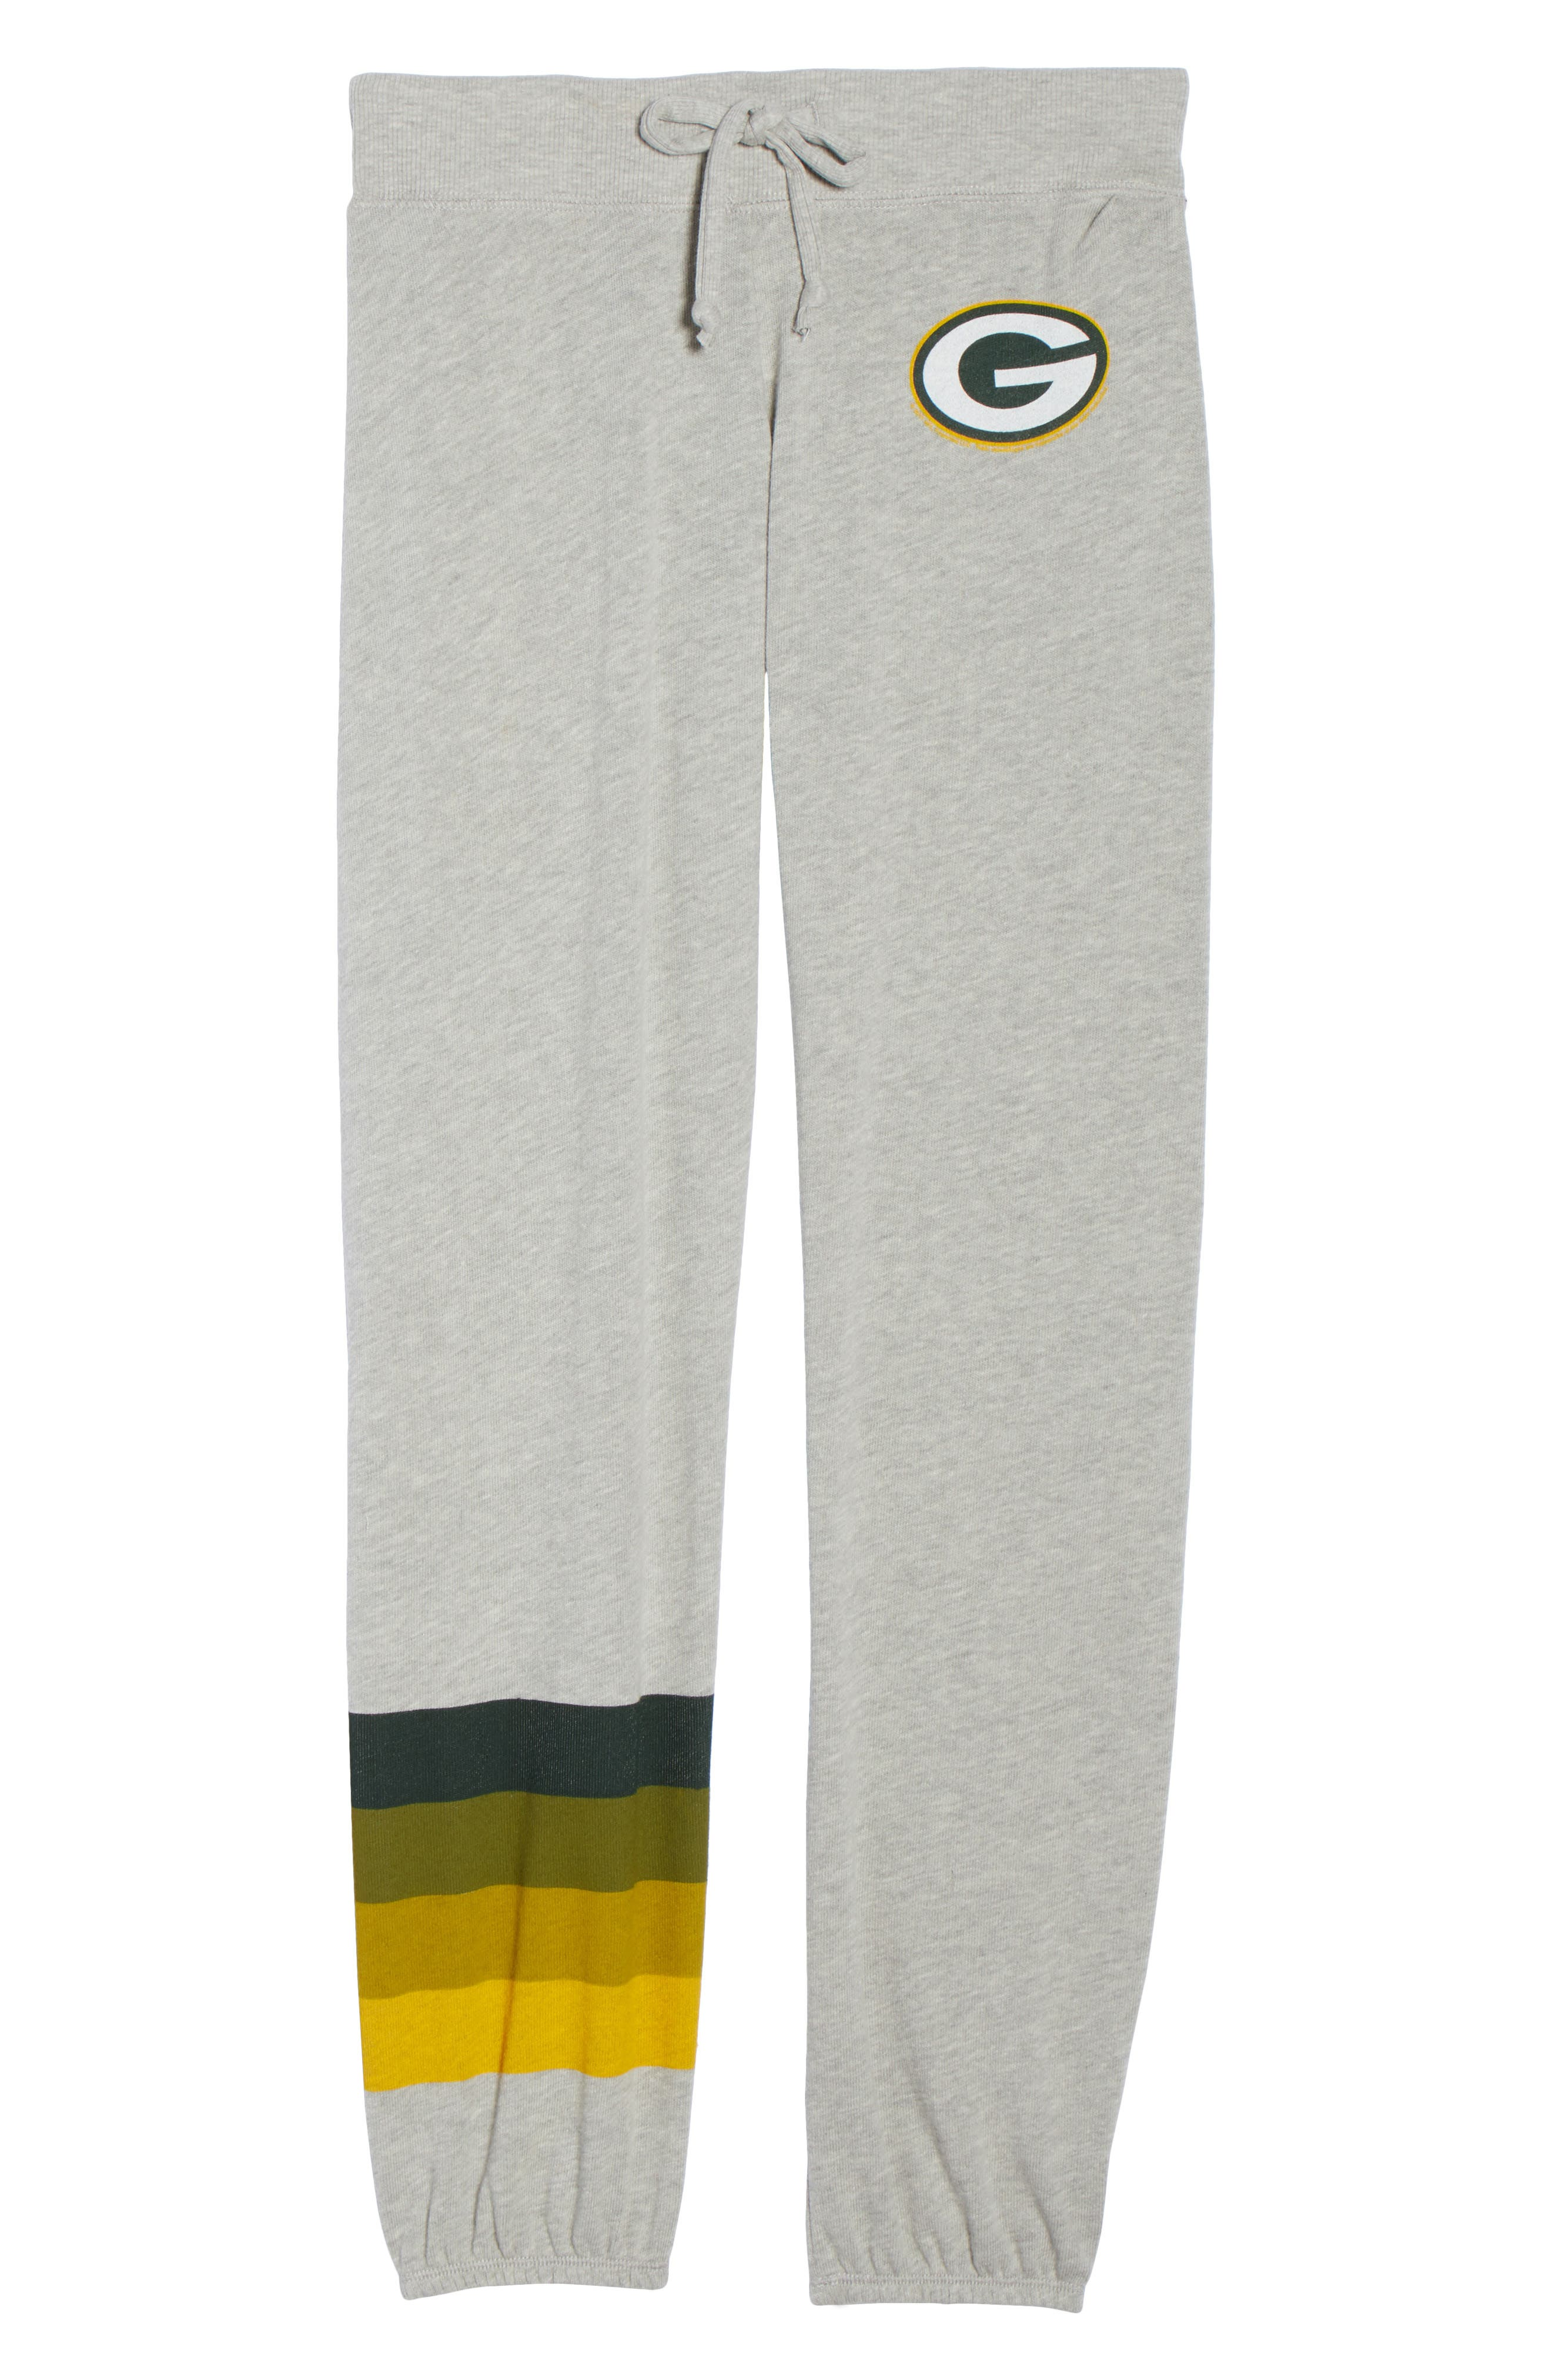 NFL Green Bay Packers Hacci Sweatpants,                             Alternate thumbnail 7, color,                             Dove Heather Grey